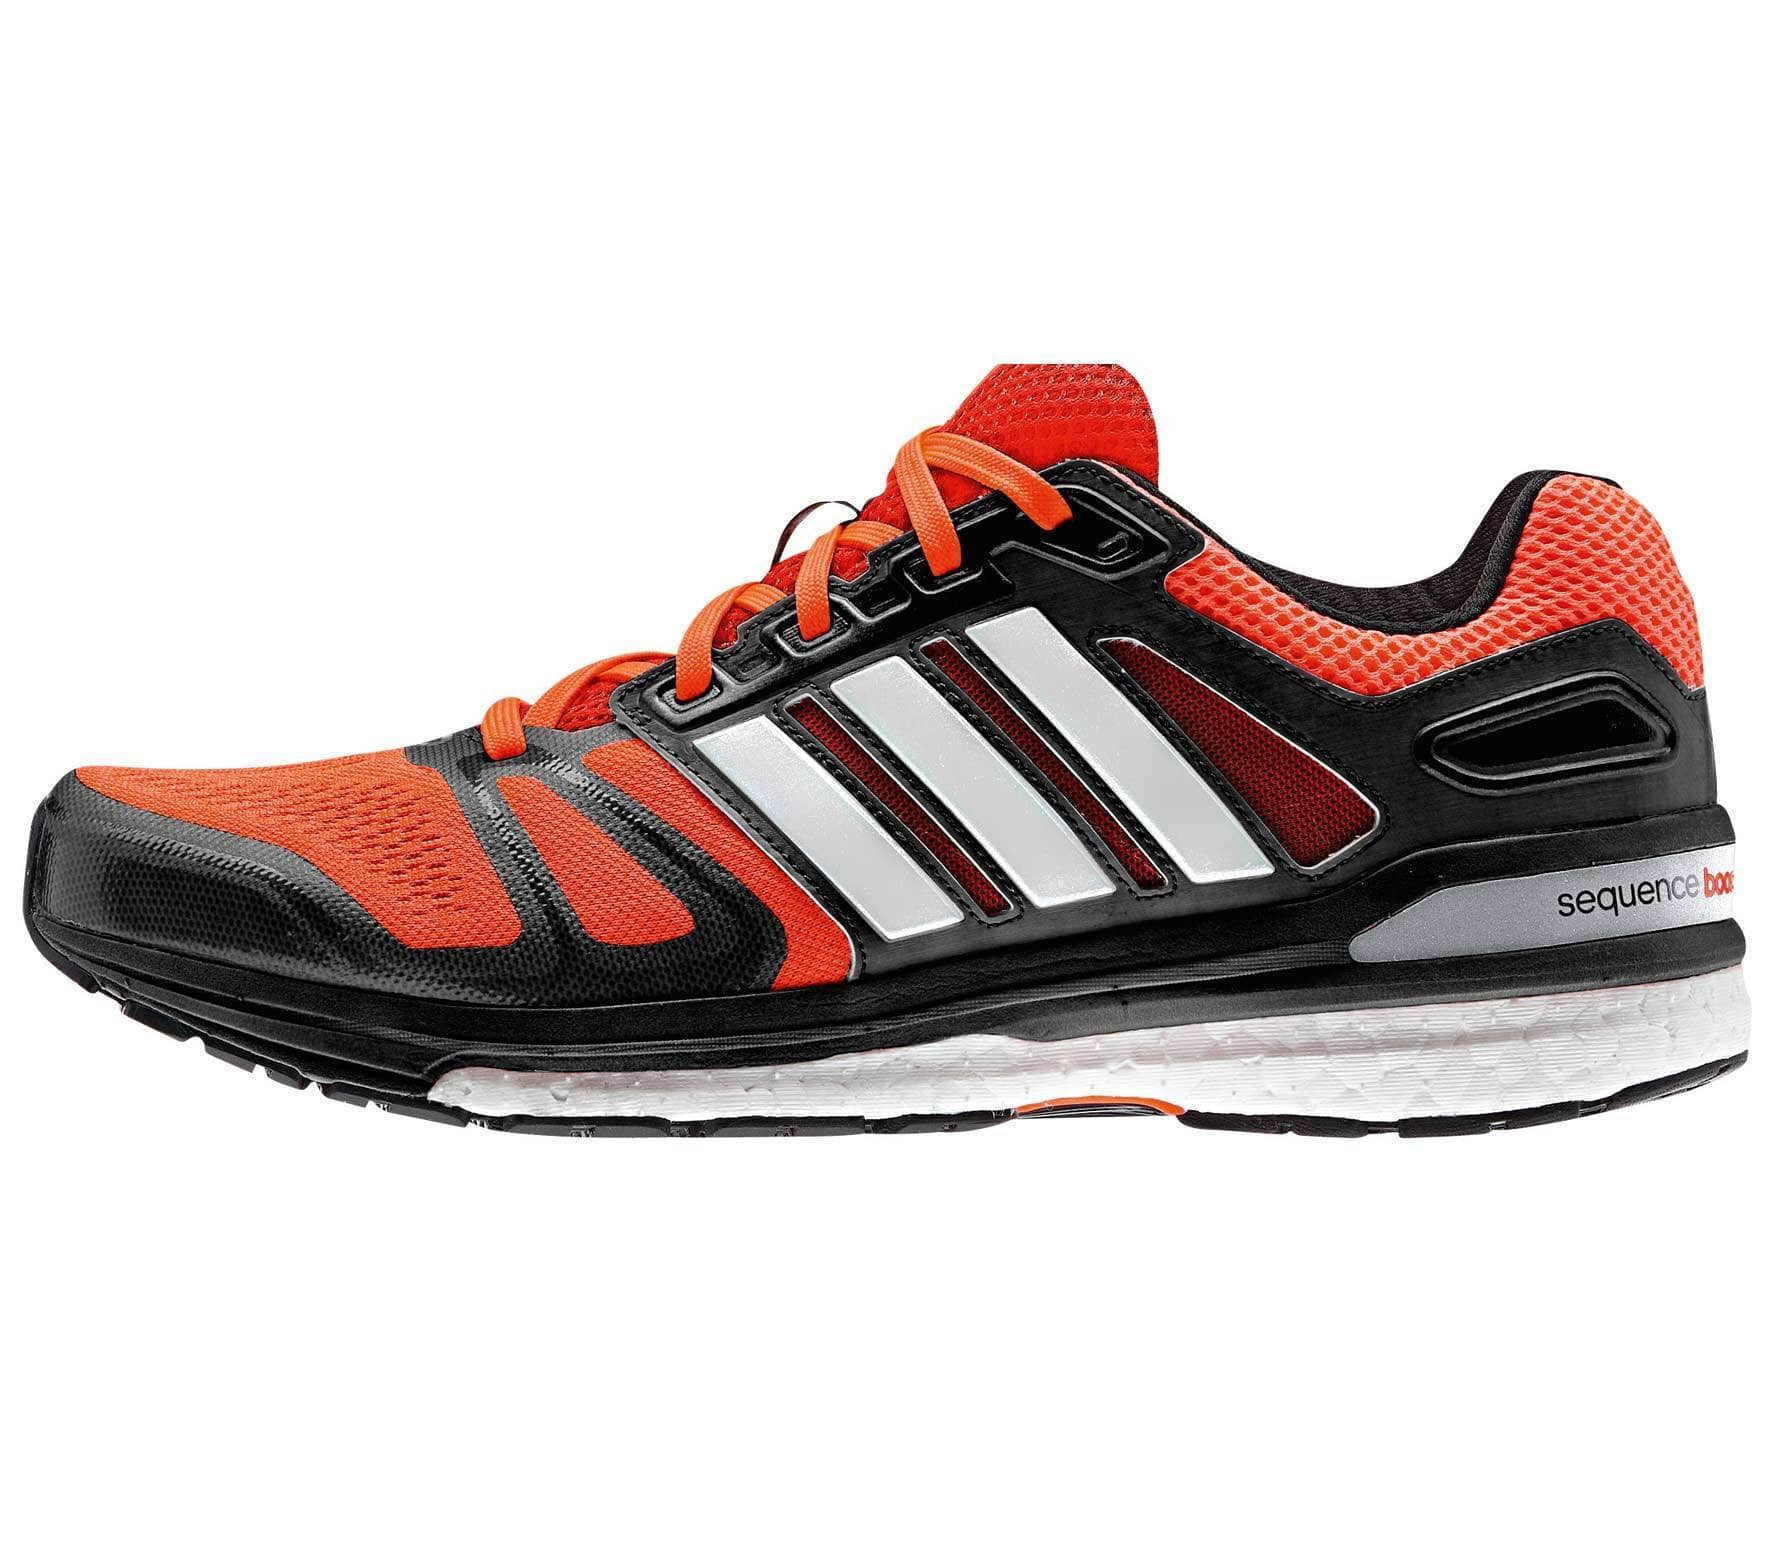 32b61c114f078 Adidas - Supernova Sequence Boost men s running shoes (red black ...